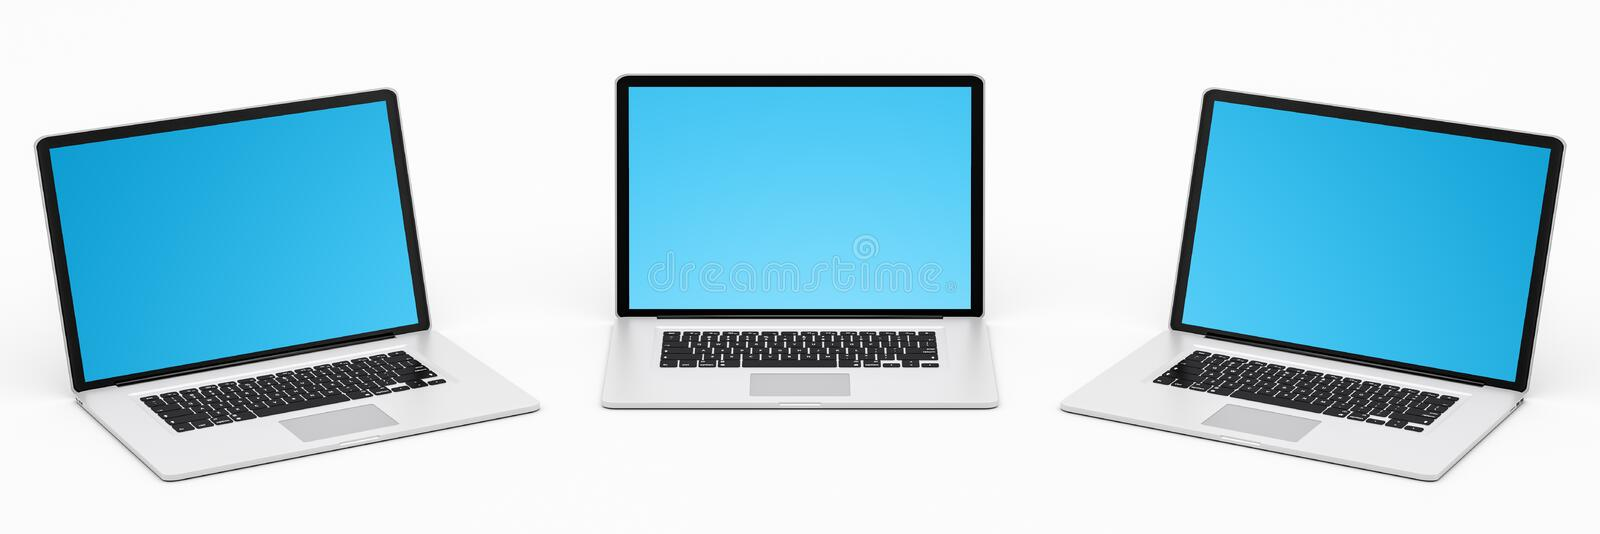 Triple modern digital silver and black laptop 3D rendering royalty free illustration